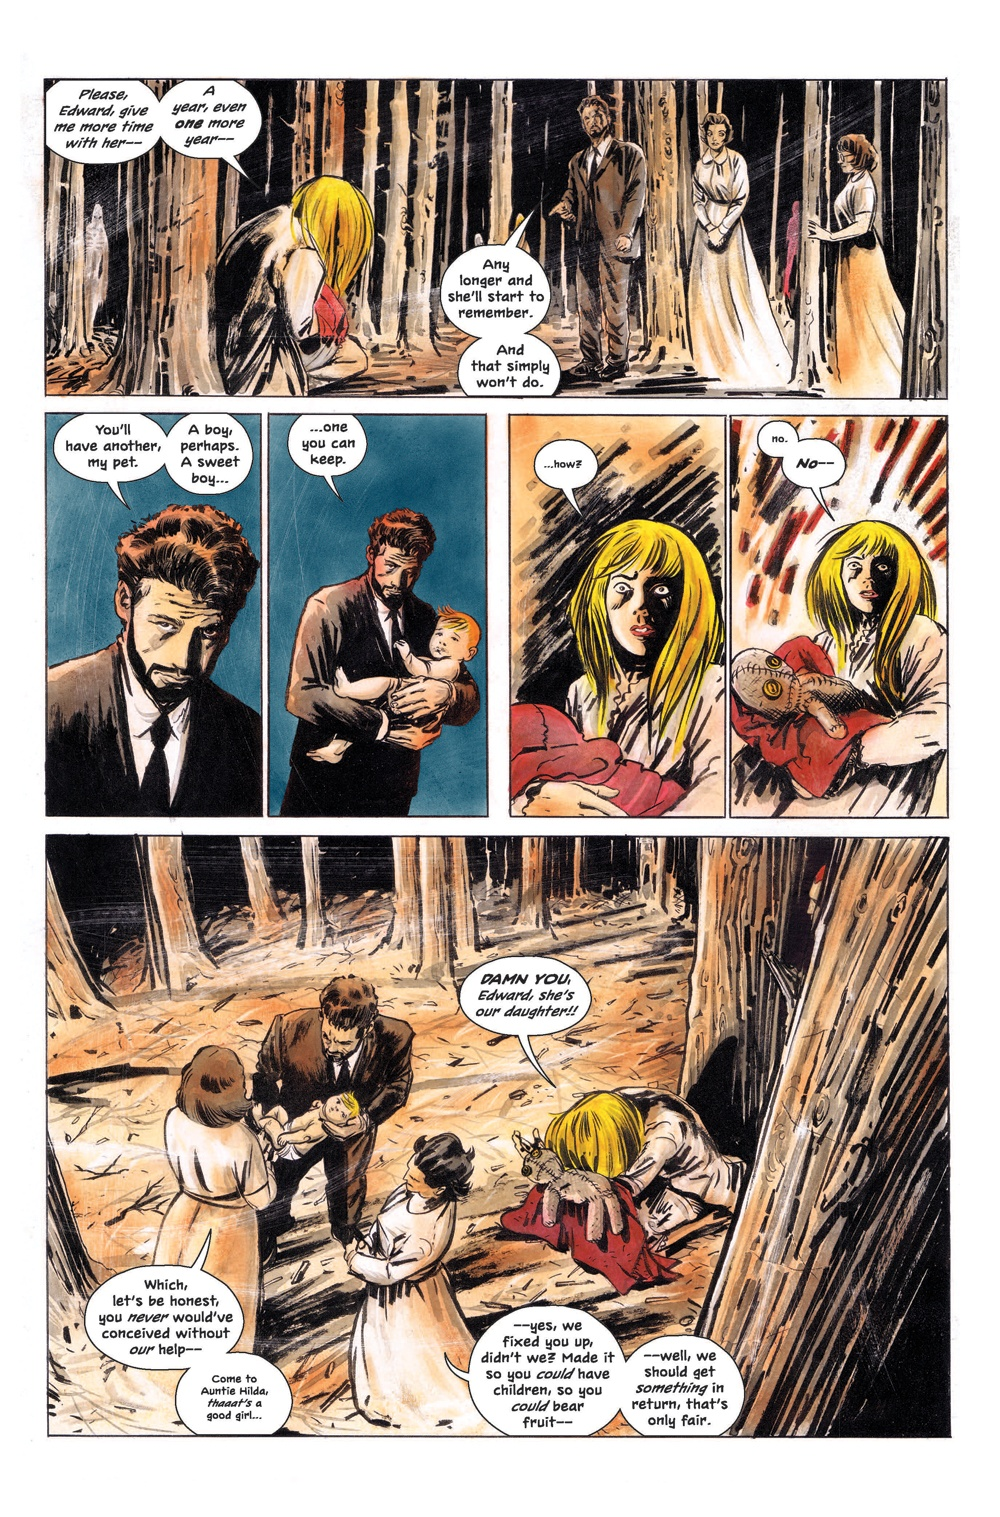 <em>Chilling Adventures of Sabrina</em>, #1